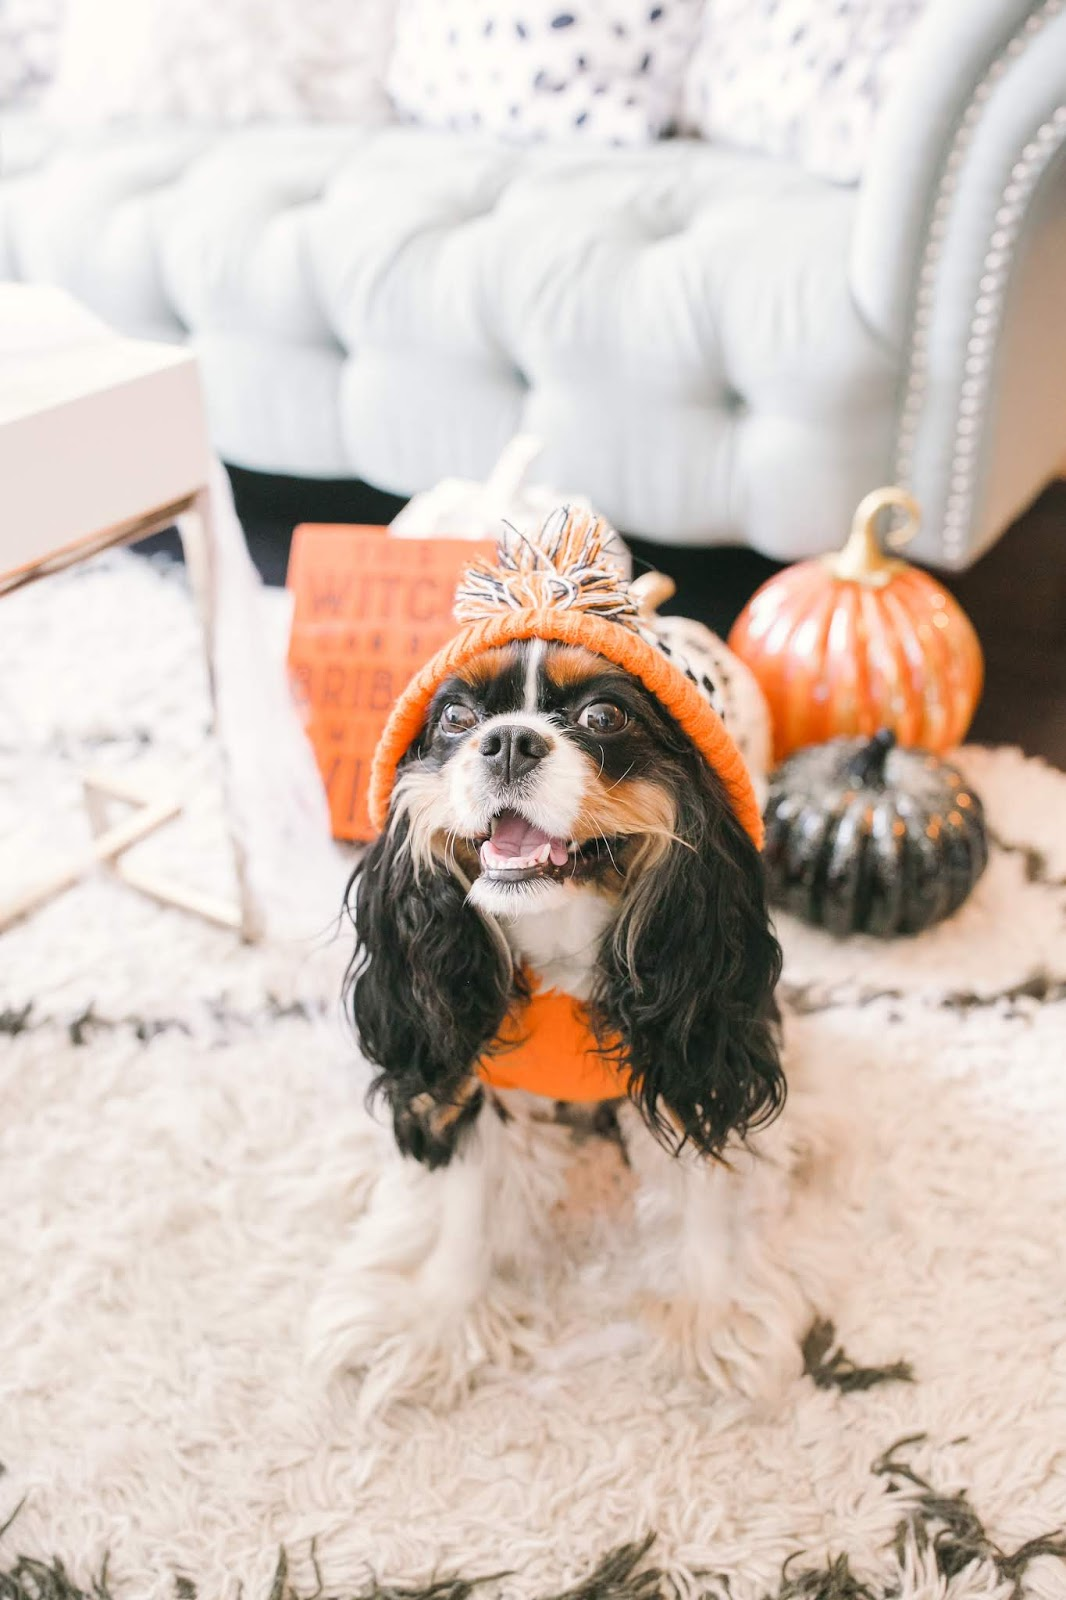 Bijuleni - How to Decorate Your Living Room for Halloween - Cavalier King Charles Spaniel wearign a hoodie